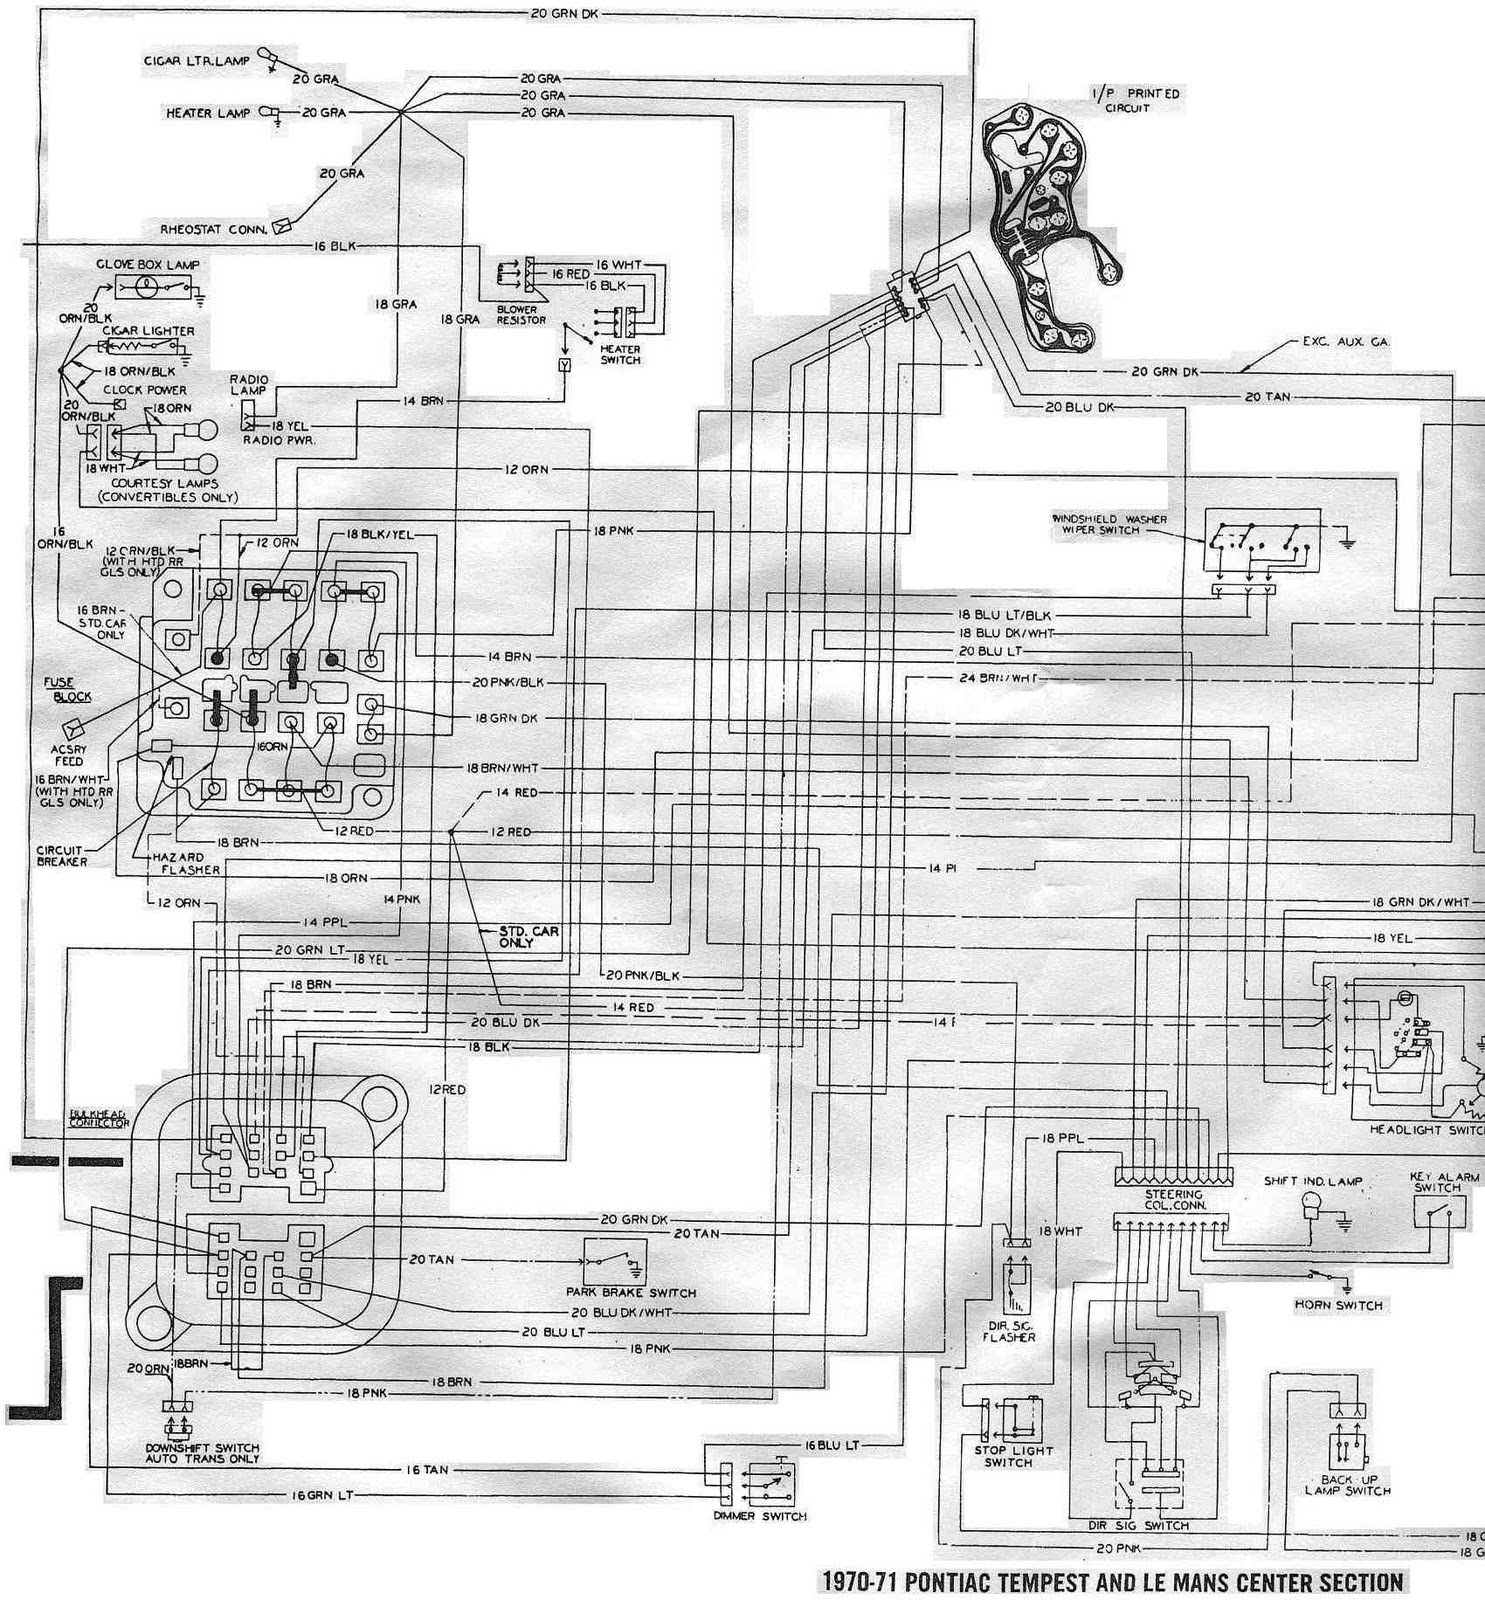 Pontiac Engine Wiring Diagram : Pontiac lemans engine wiring diagram get free image